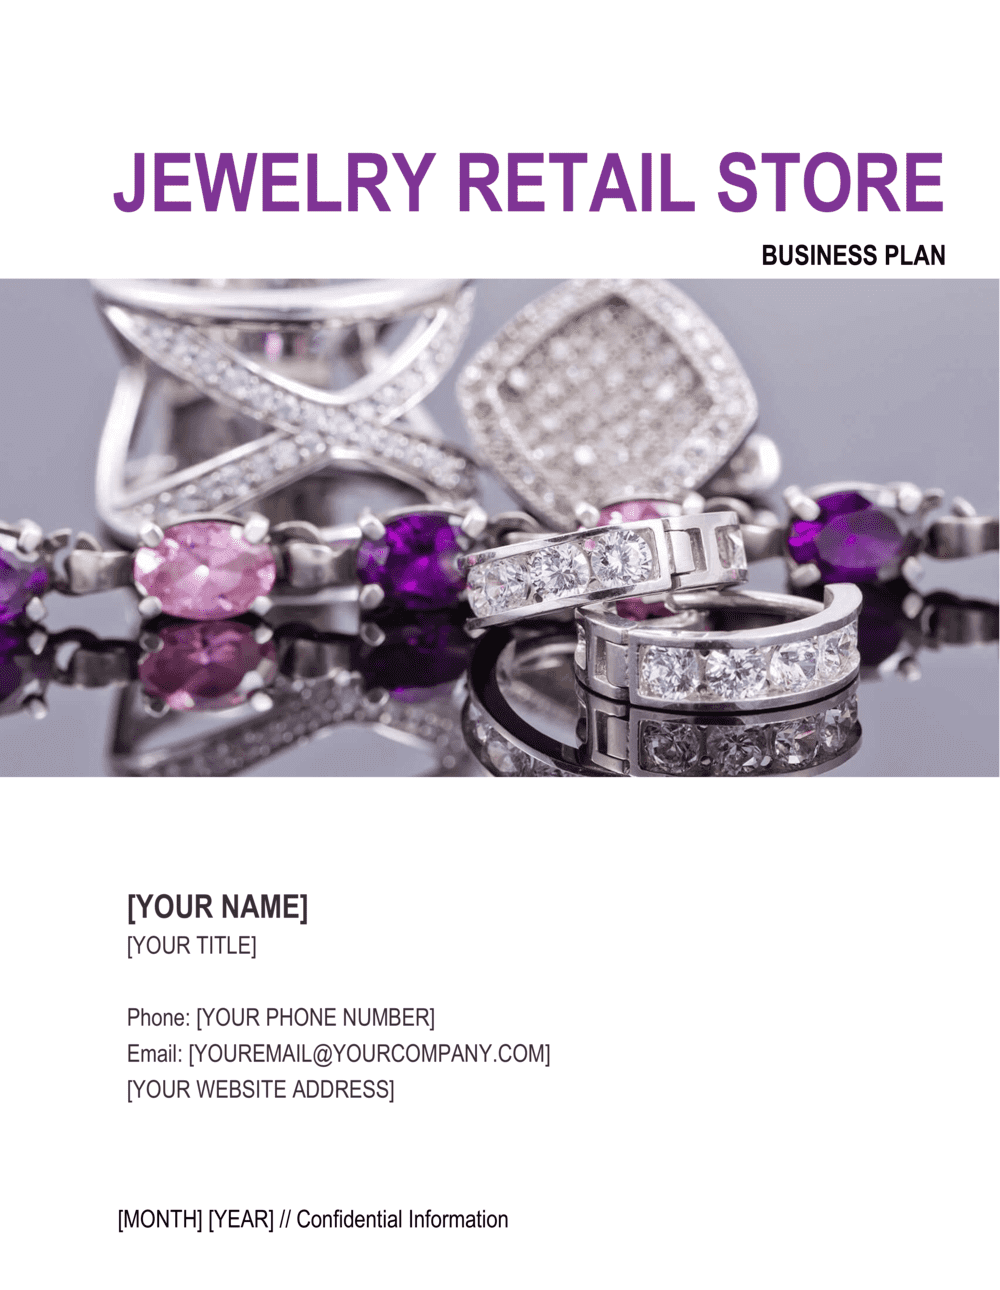 Business-in-a-Box's Jewelry Retail Store Business Plan Template